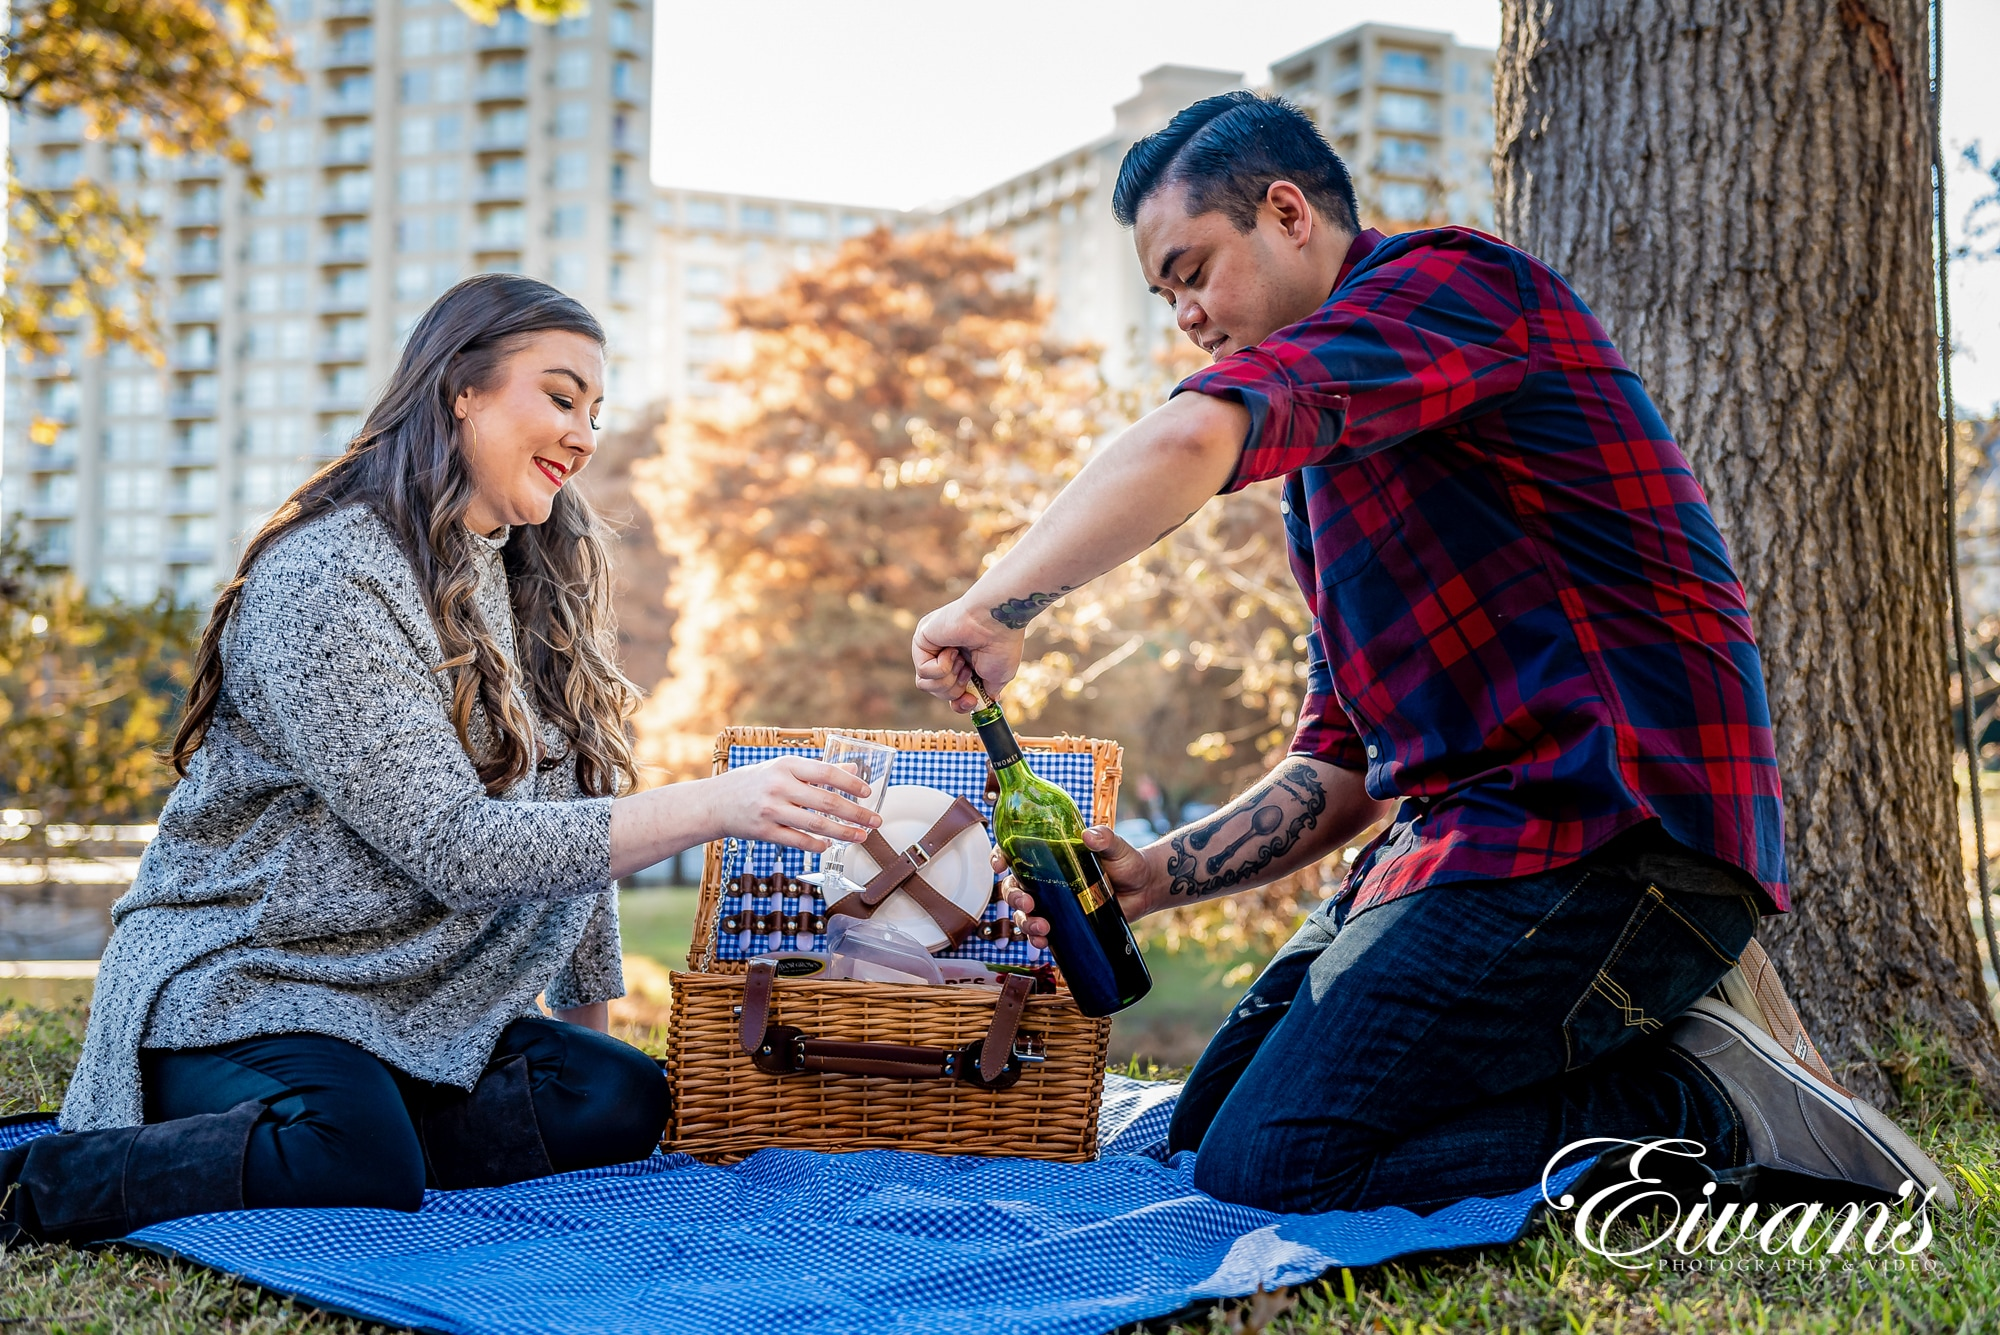 Image of an engaged man and woman having a picnic